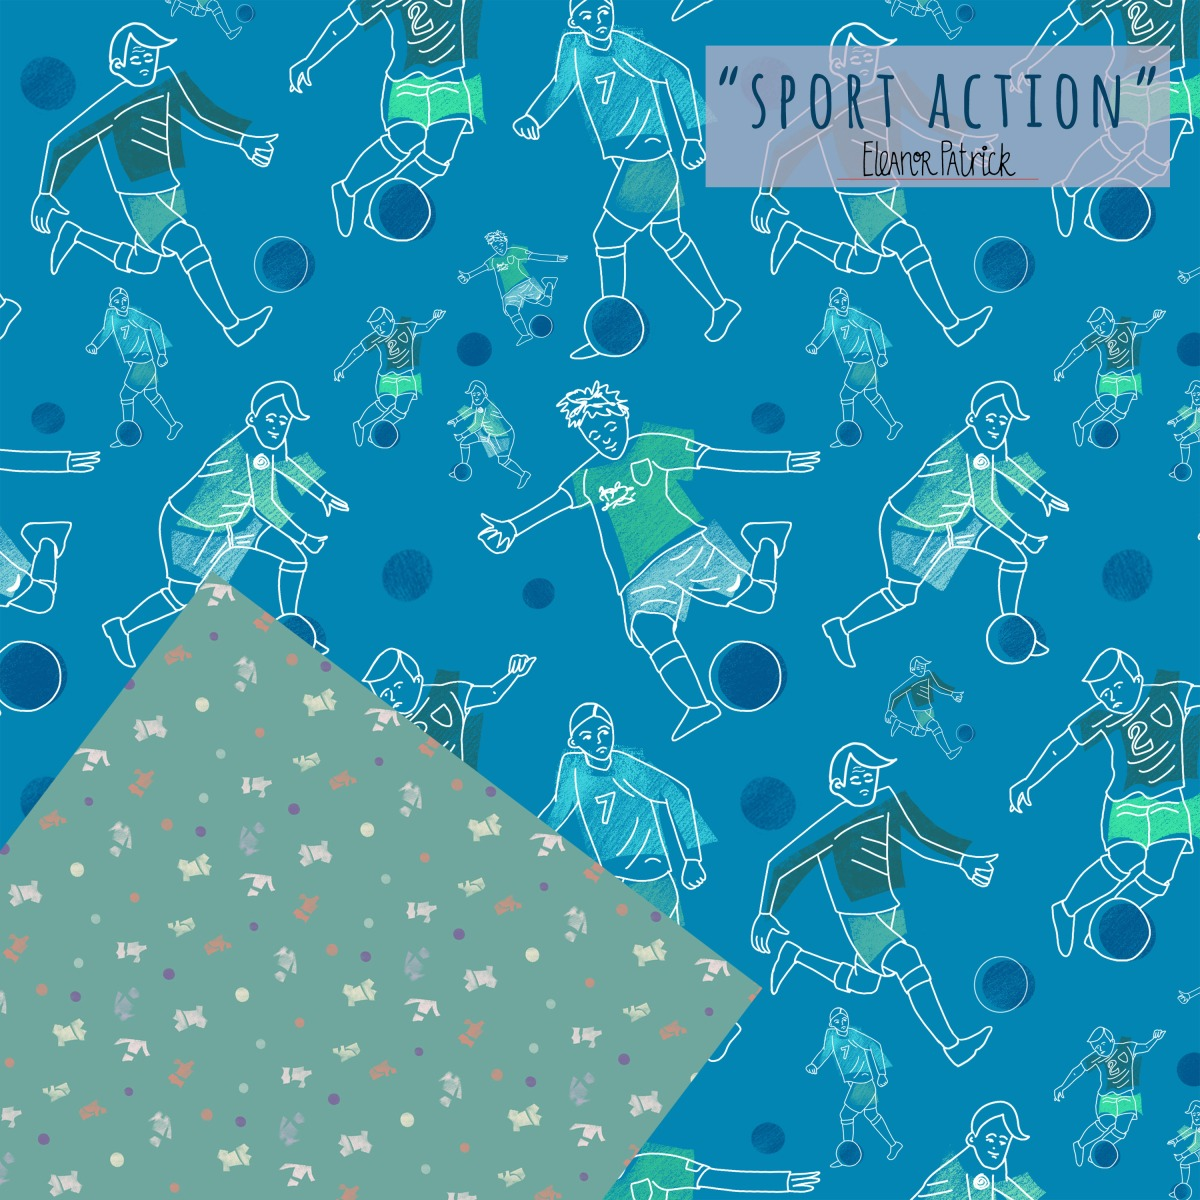 sport action samples